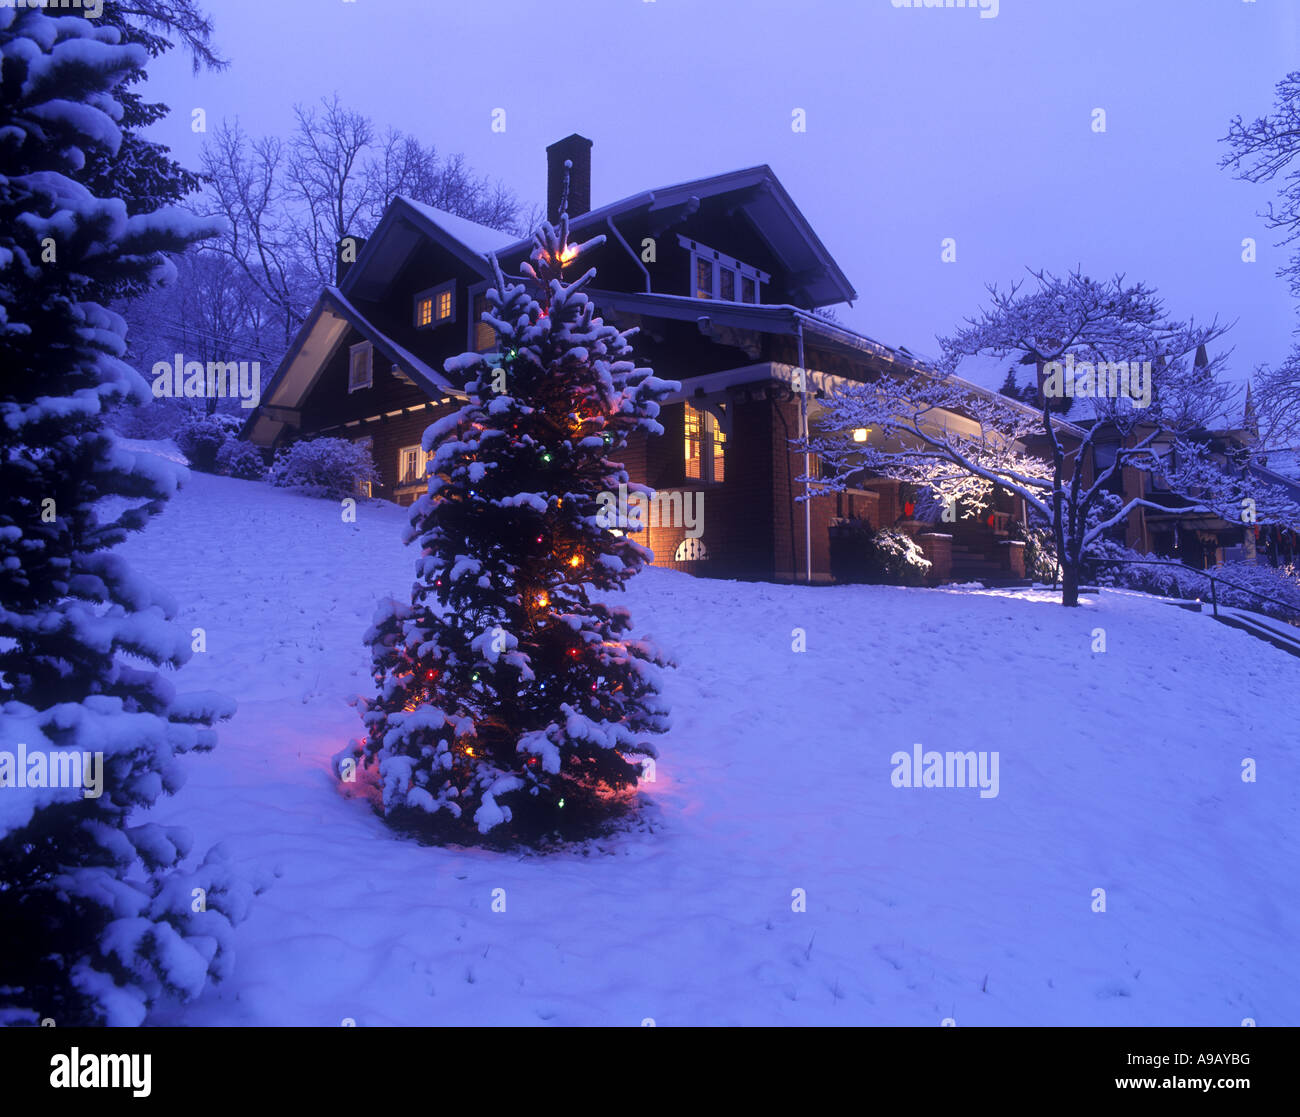 Snow covered christmas tree lights in garden of house